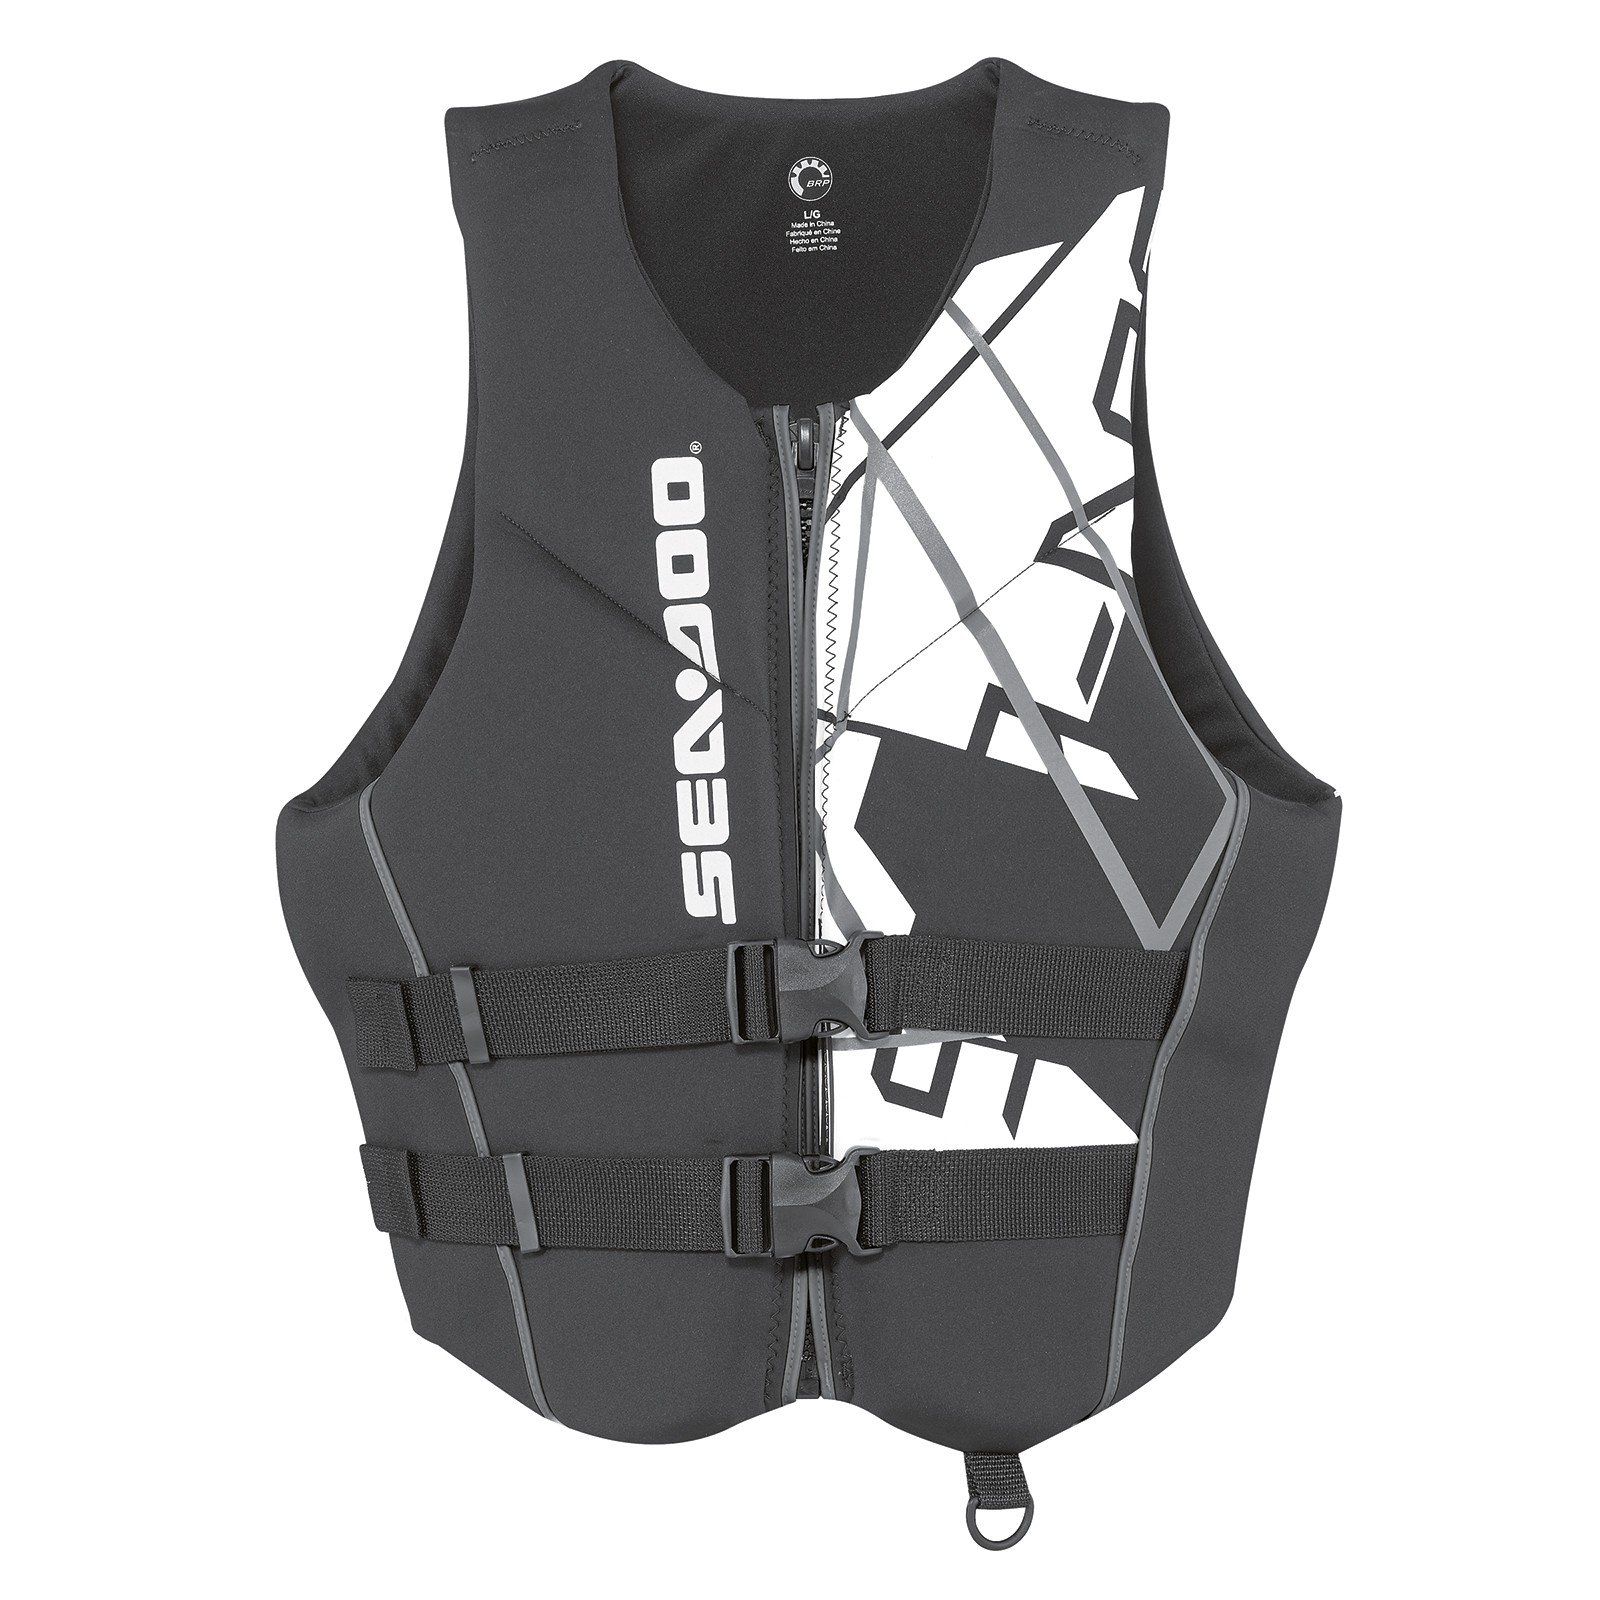 Sea-Doo Men's Freedom PFD - Black - Large by Sea-Doo